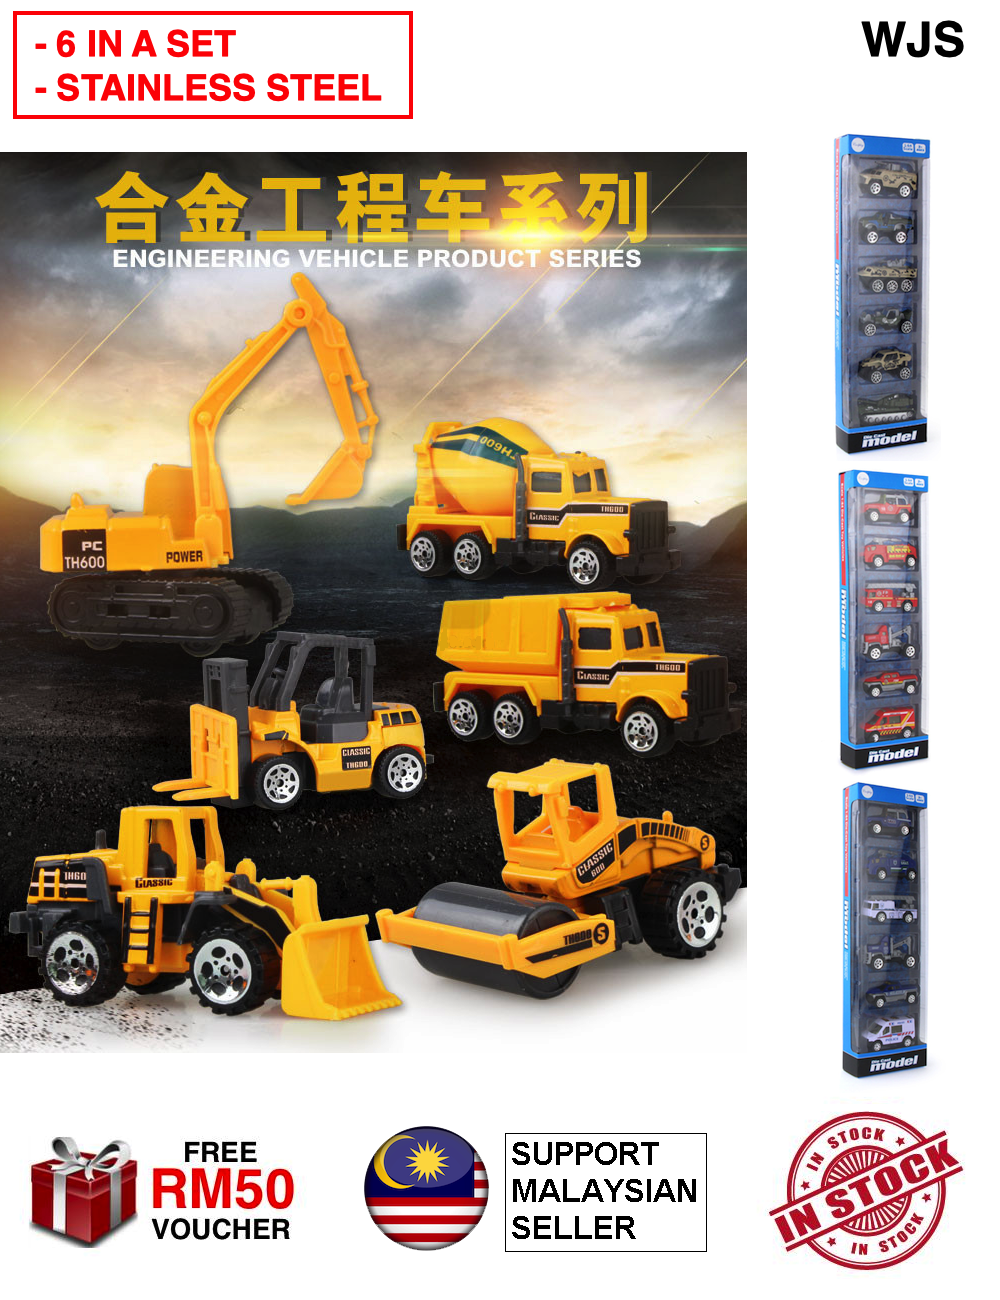 (6 IN A SET) WJS 6pc 6pcs Car Toy Set Construction Vehicle Bulldozer Tractor Police Car Army Truck Solider Fire Truck Mini Model Car Figure Firetuck Toys Set Kereta Mainan STAINLESS STEEL [FREE RM 50 VOUCHER]